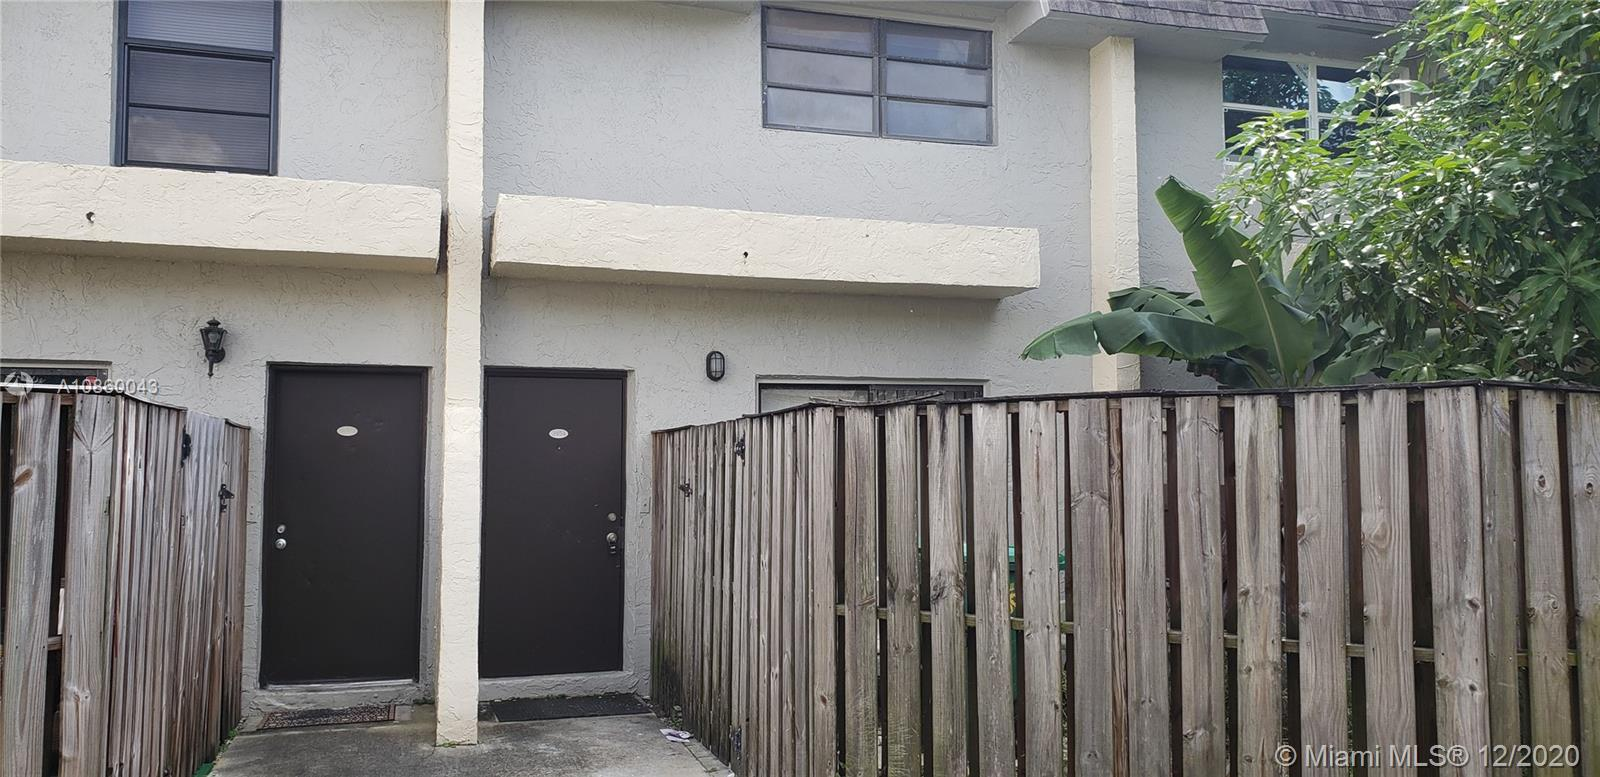 BEAUTIFUL TOWNHOUSE IN GREAT AREA, FANTASTIC DEAL IN LAUDERHILL, INCOME PRODUCING GOOD TENANT FOR YEARS, 2 BEDROOMS 1.5 BATHROOMS, CERAMIC TILE FLOORS, PRIVATE FRONT PATIO, VERY SAFE QUIET AREA CLOSE TO SCHOOLS,ALL OFFERS MUST BE PRESENTED IN A FARBAR ASIS CONTRACT WITH PROOF OF FUNDS AND OR APPROVAL LETTER, SOLD ASIS,